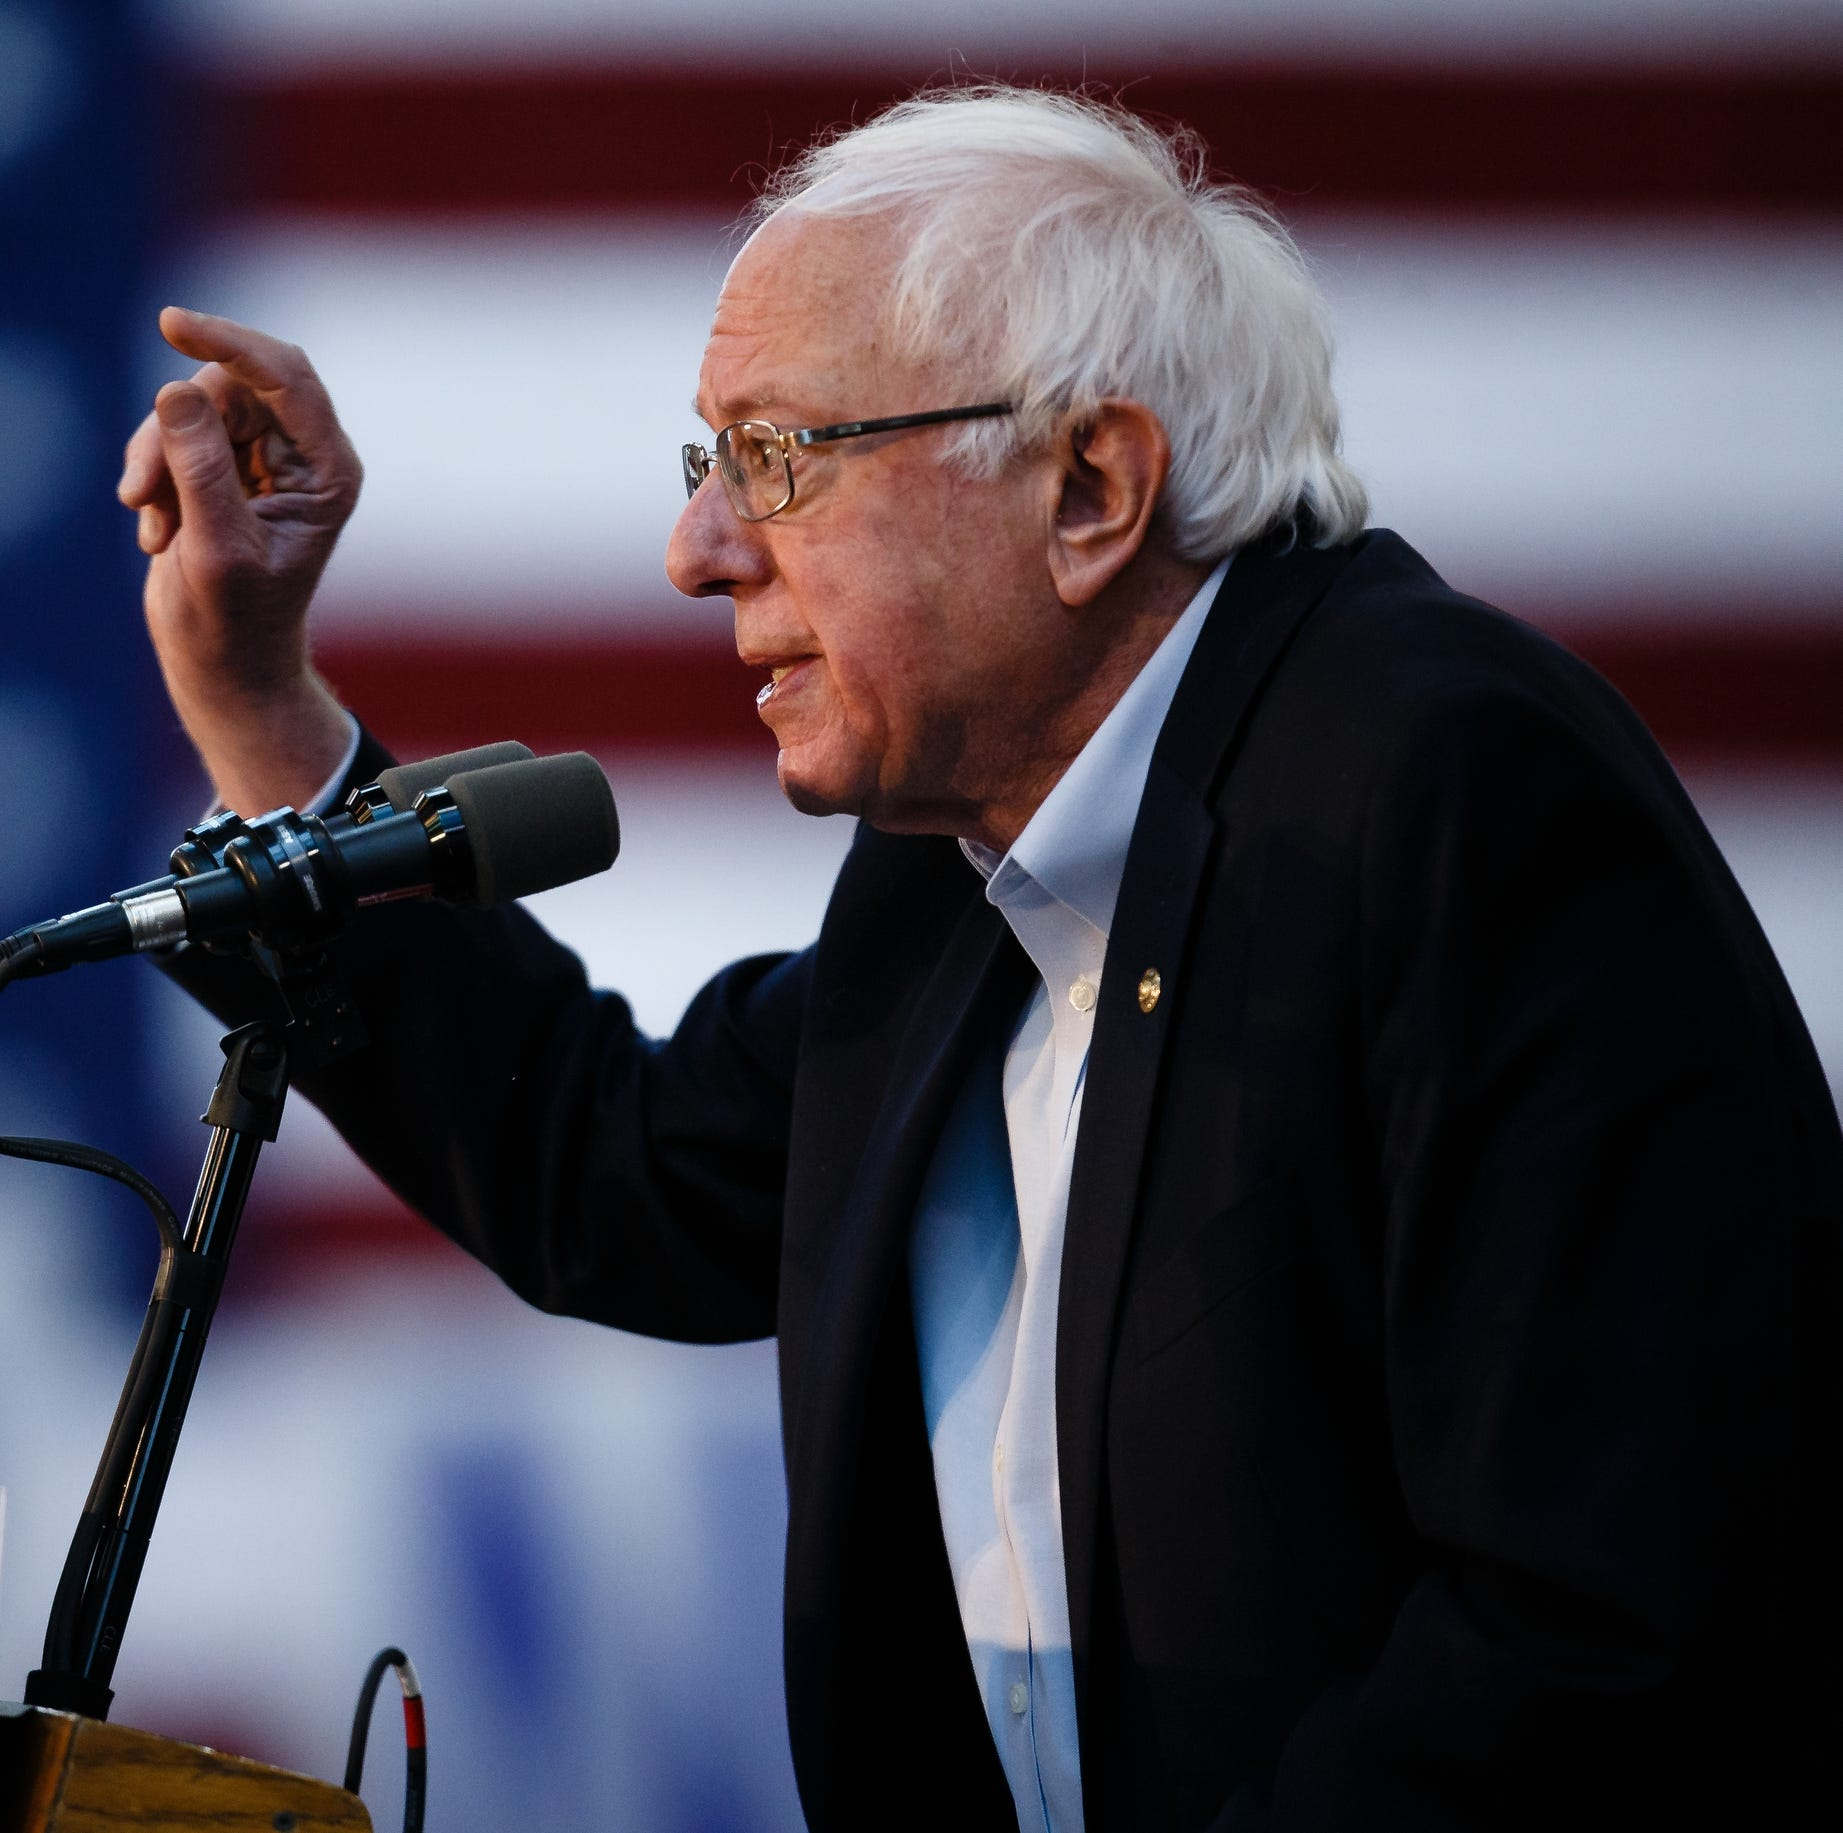 Bernie Sanders will roll out new policy to combat the 'major, major crisis' facing rural communities in Iowa